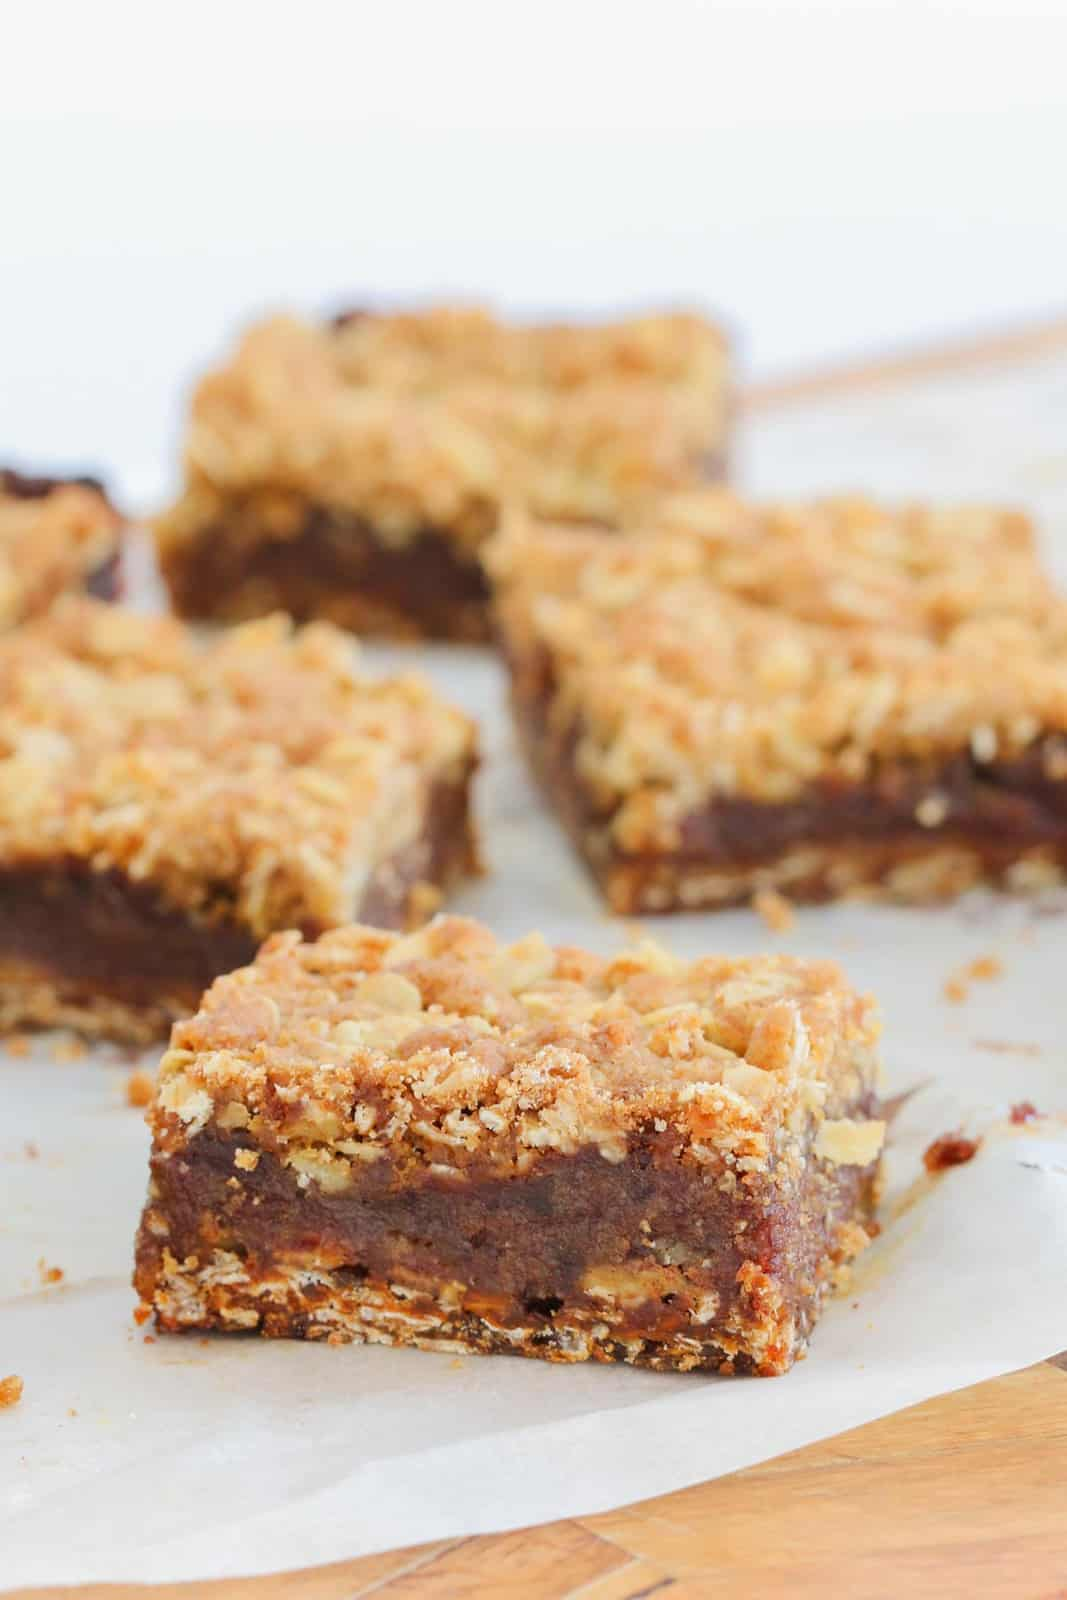 Squares of a oat & date slice on a white dish, with a golden crumble topping